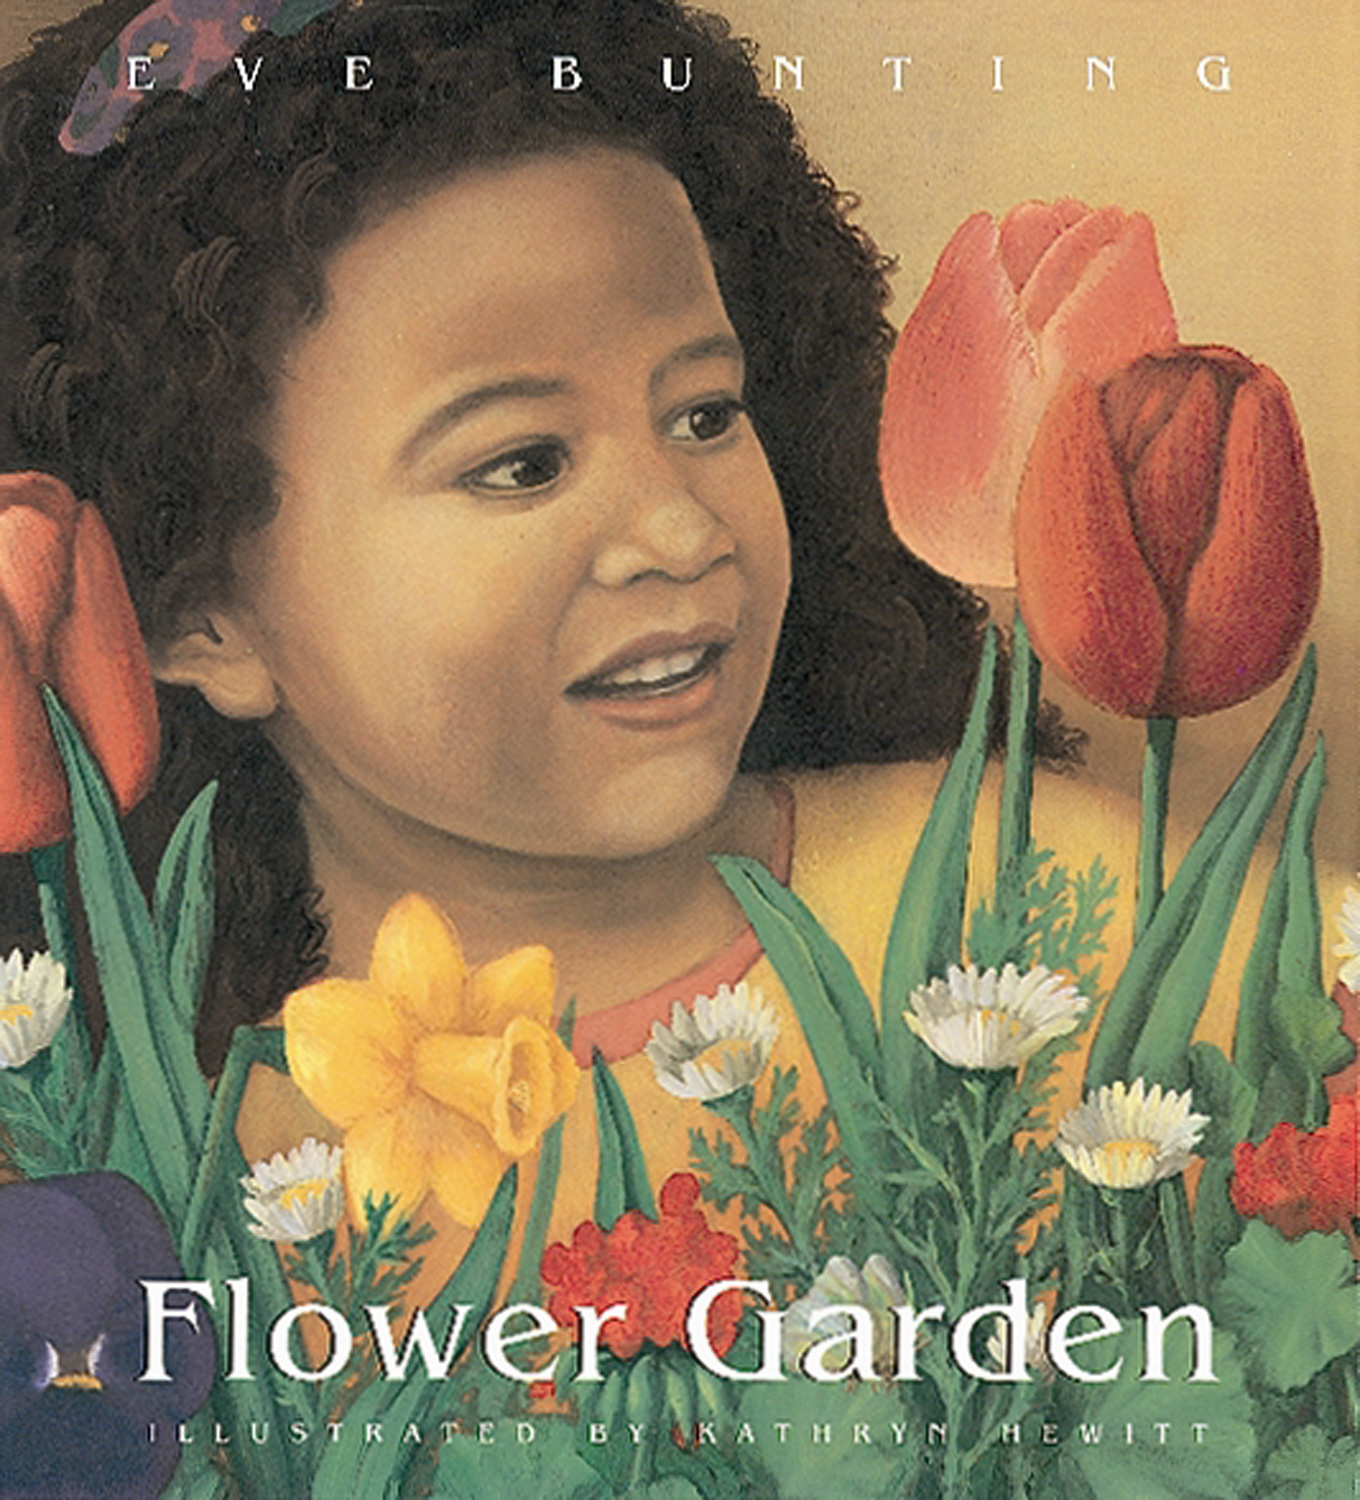 """Flower Garden"" by Eve Bunting, illustrated by Kathryn Hewitt"